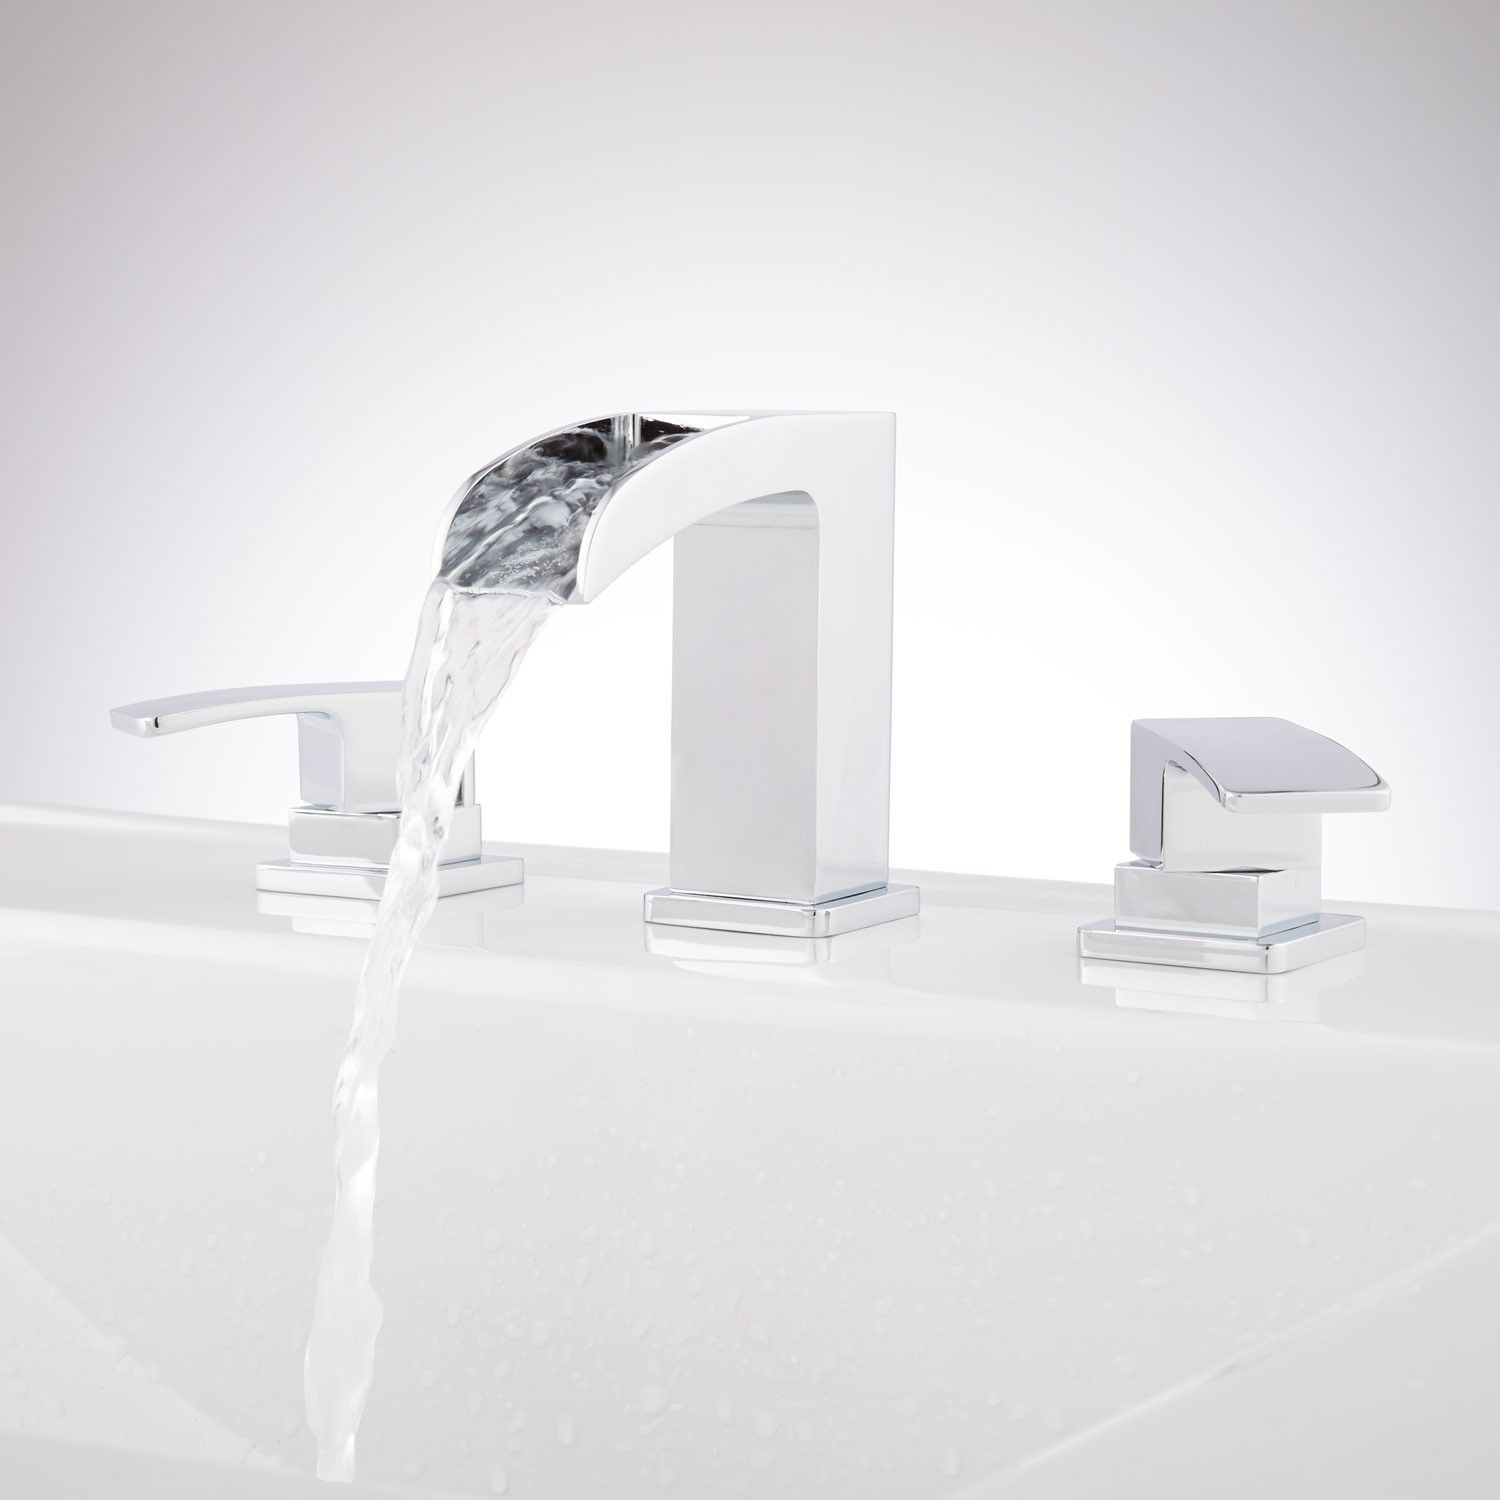 Stevens Widespread Waterfall Faucet | Waterfall faucet, Faucet and ...